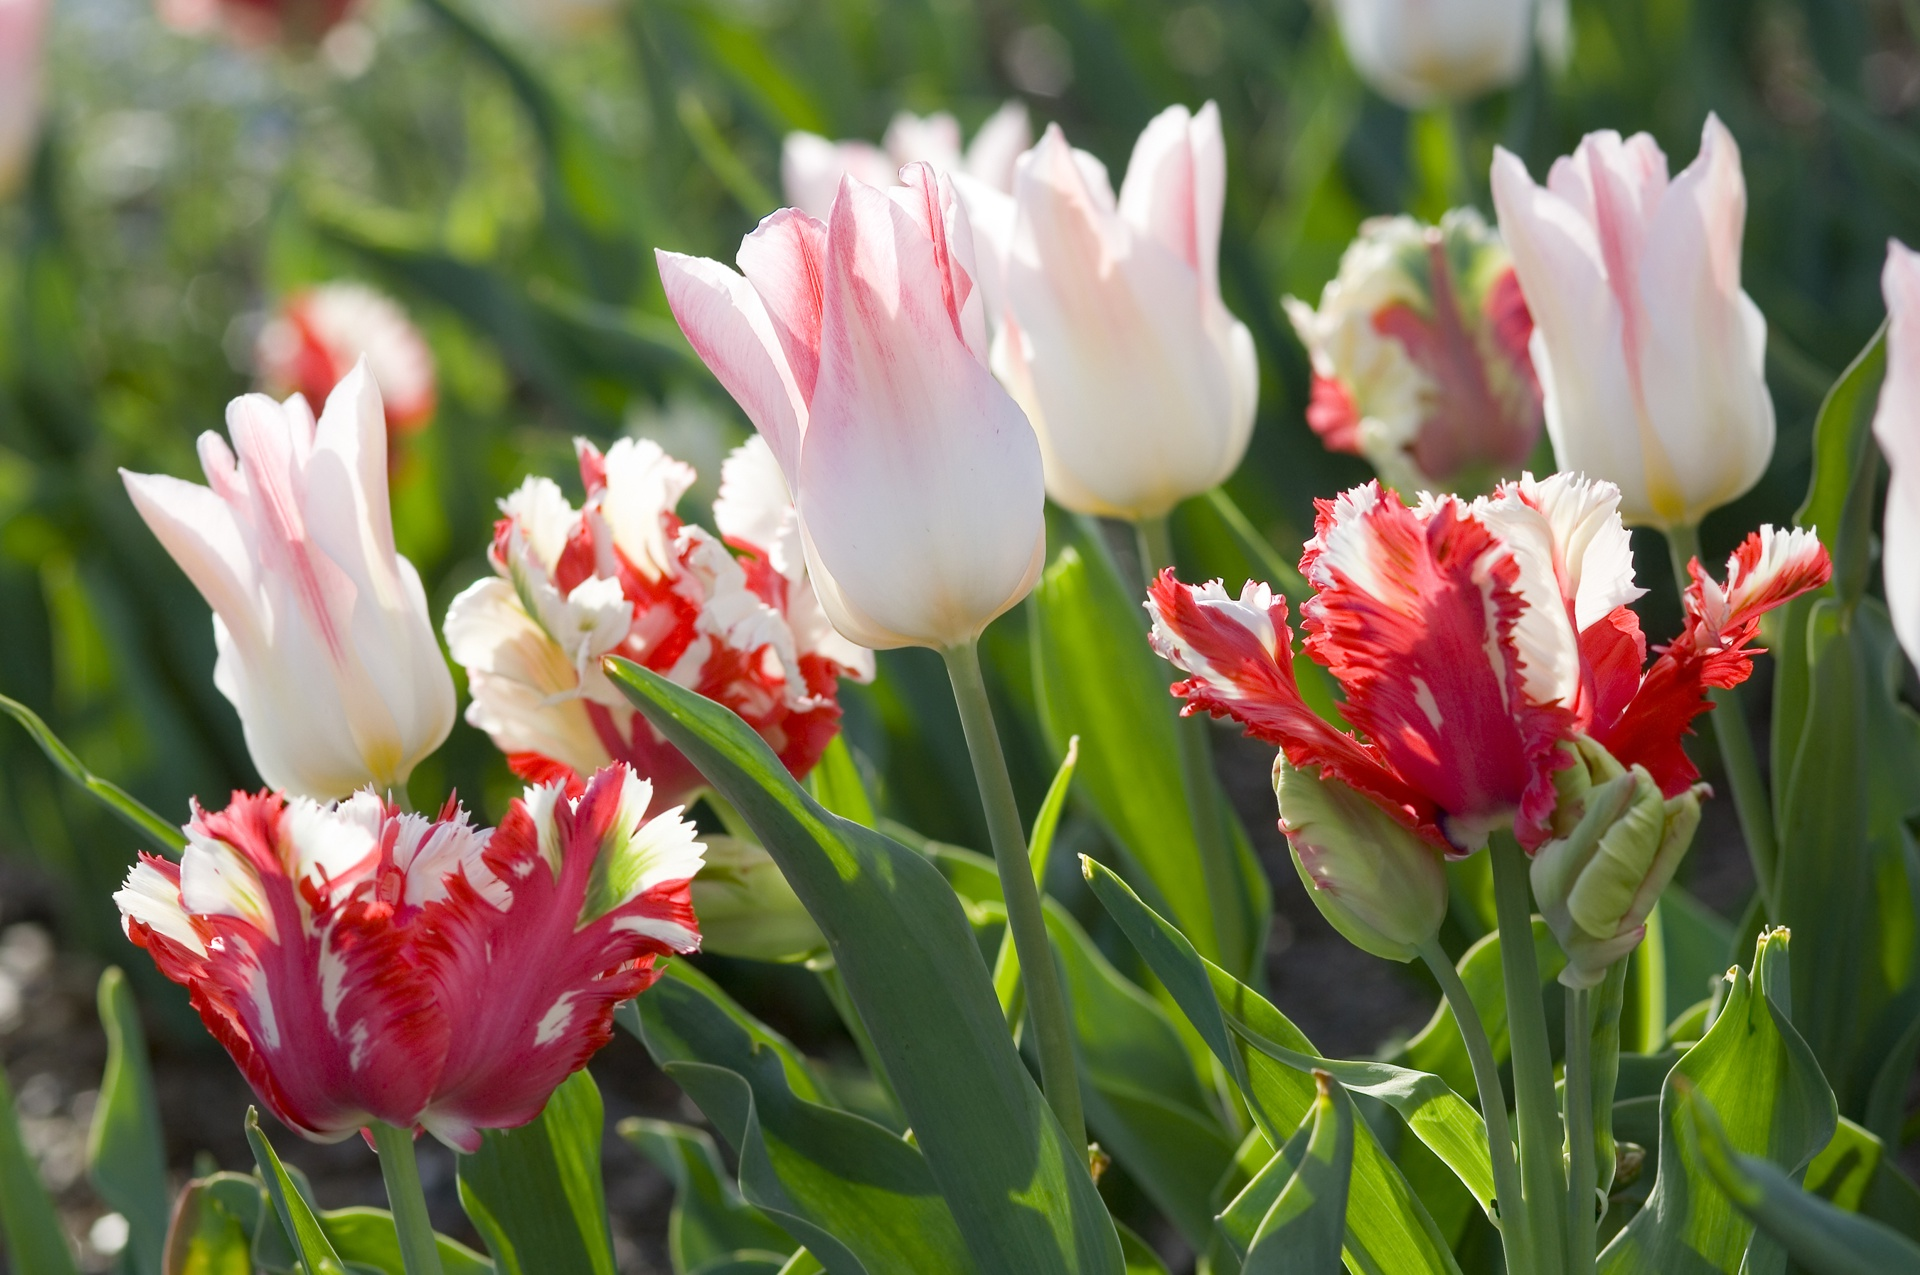 Early Fall Hd Wallpaper Plant Tulips This Fall For Spring Beauty Ladell Landscaping